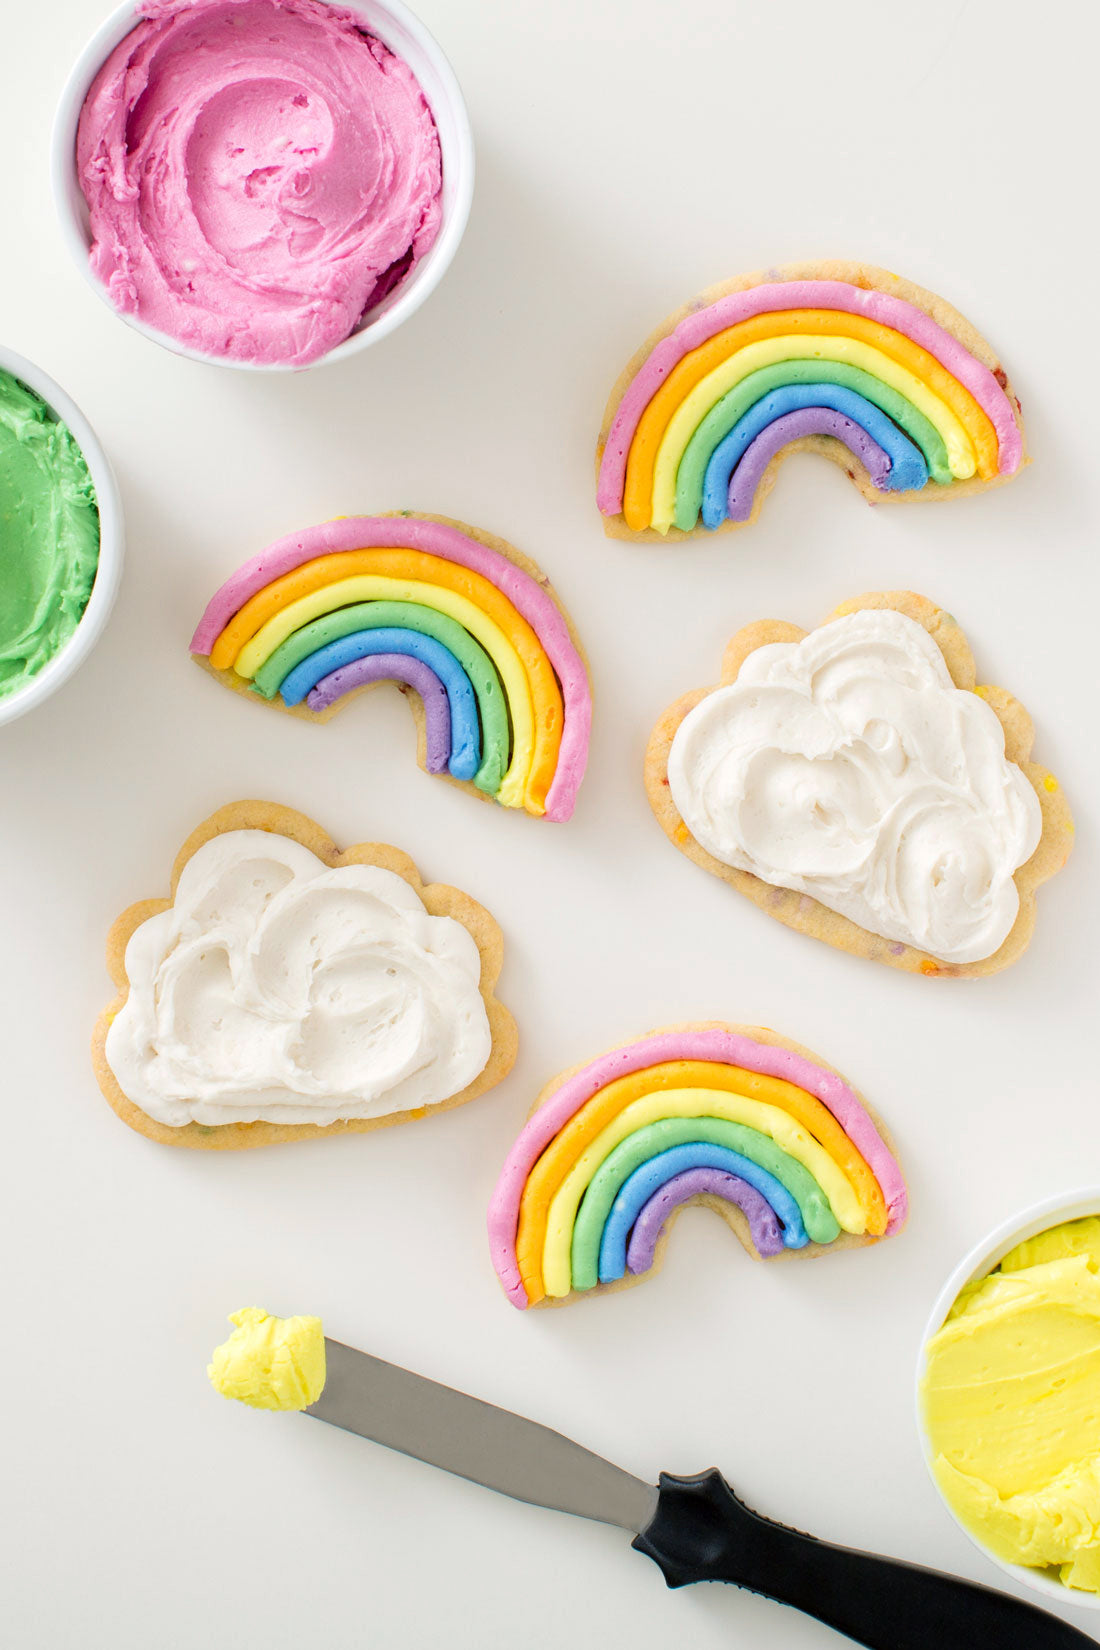 Image of Miss Jones Baking Co Chewy and Soft Rainbow and Cloud Frosted Confetti Sugar Cookies next to frosting cups and a knife